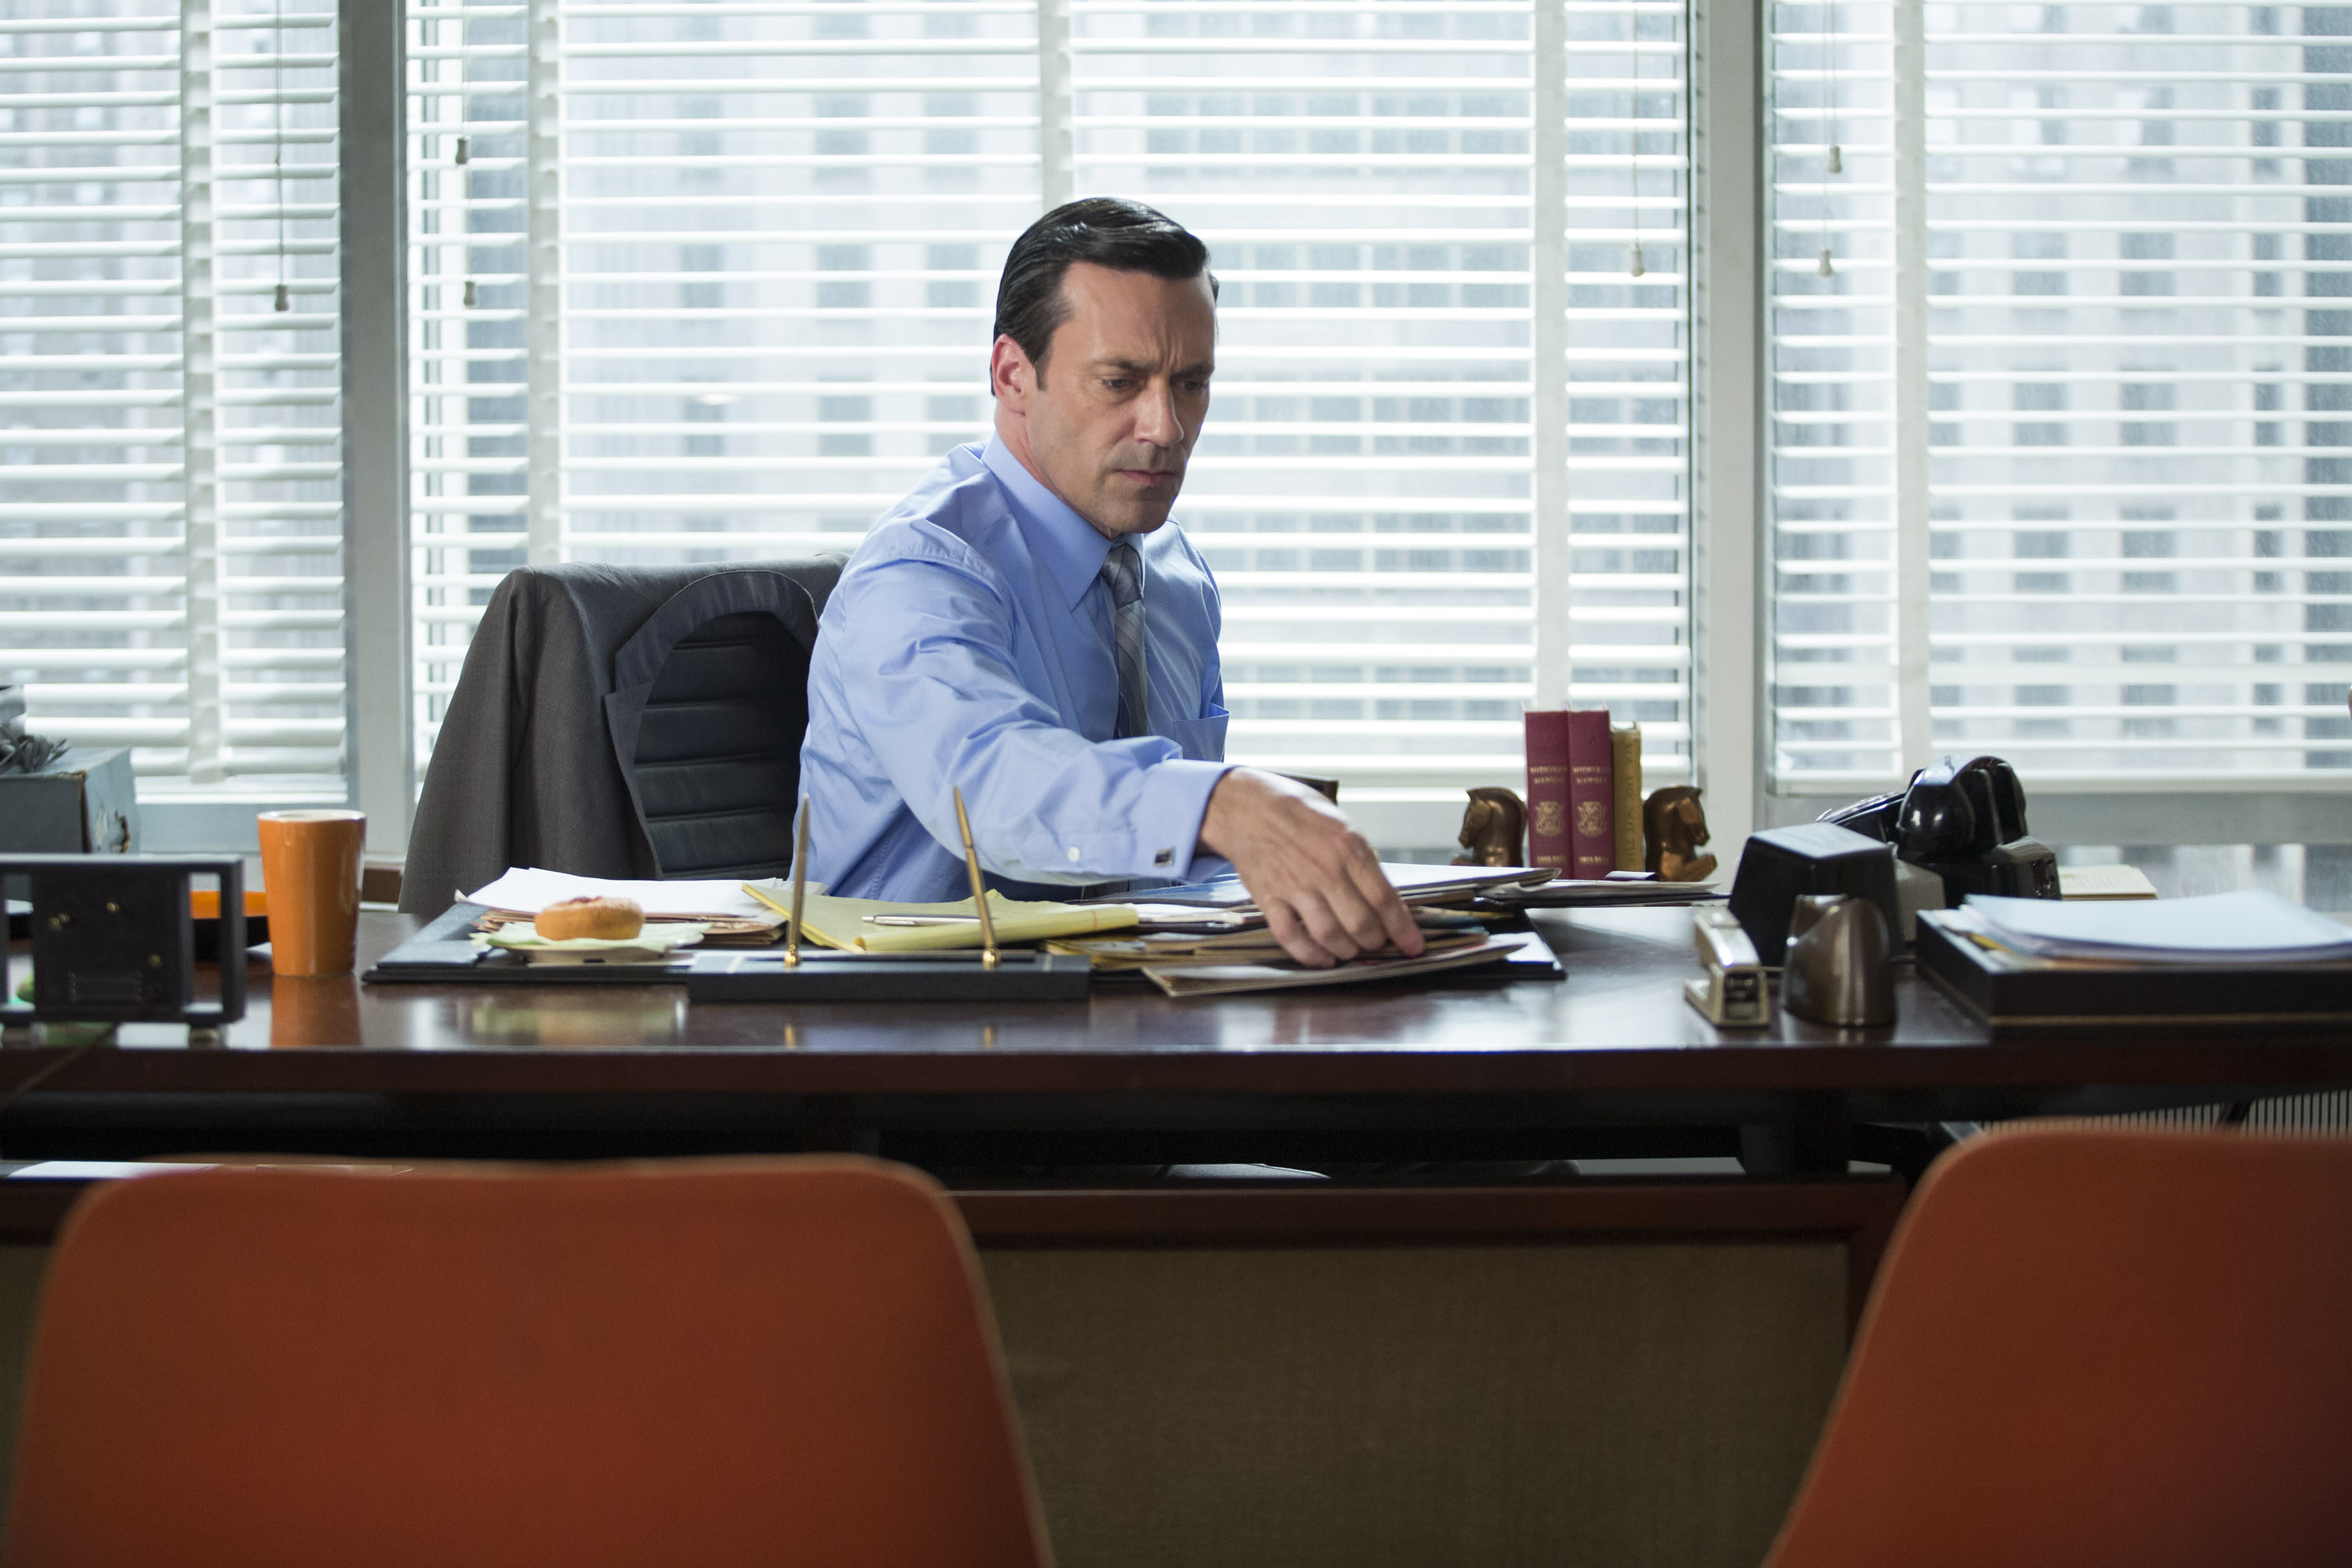 'Mad Men' Recap: 'The Forecast' Keeps Don, Joan, Betty and Sally Busy (SPOILERS)